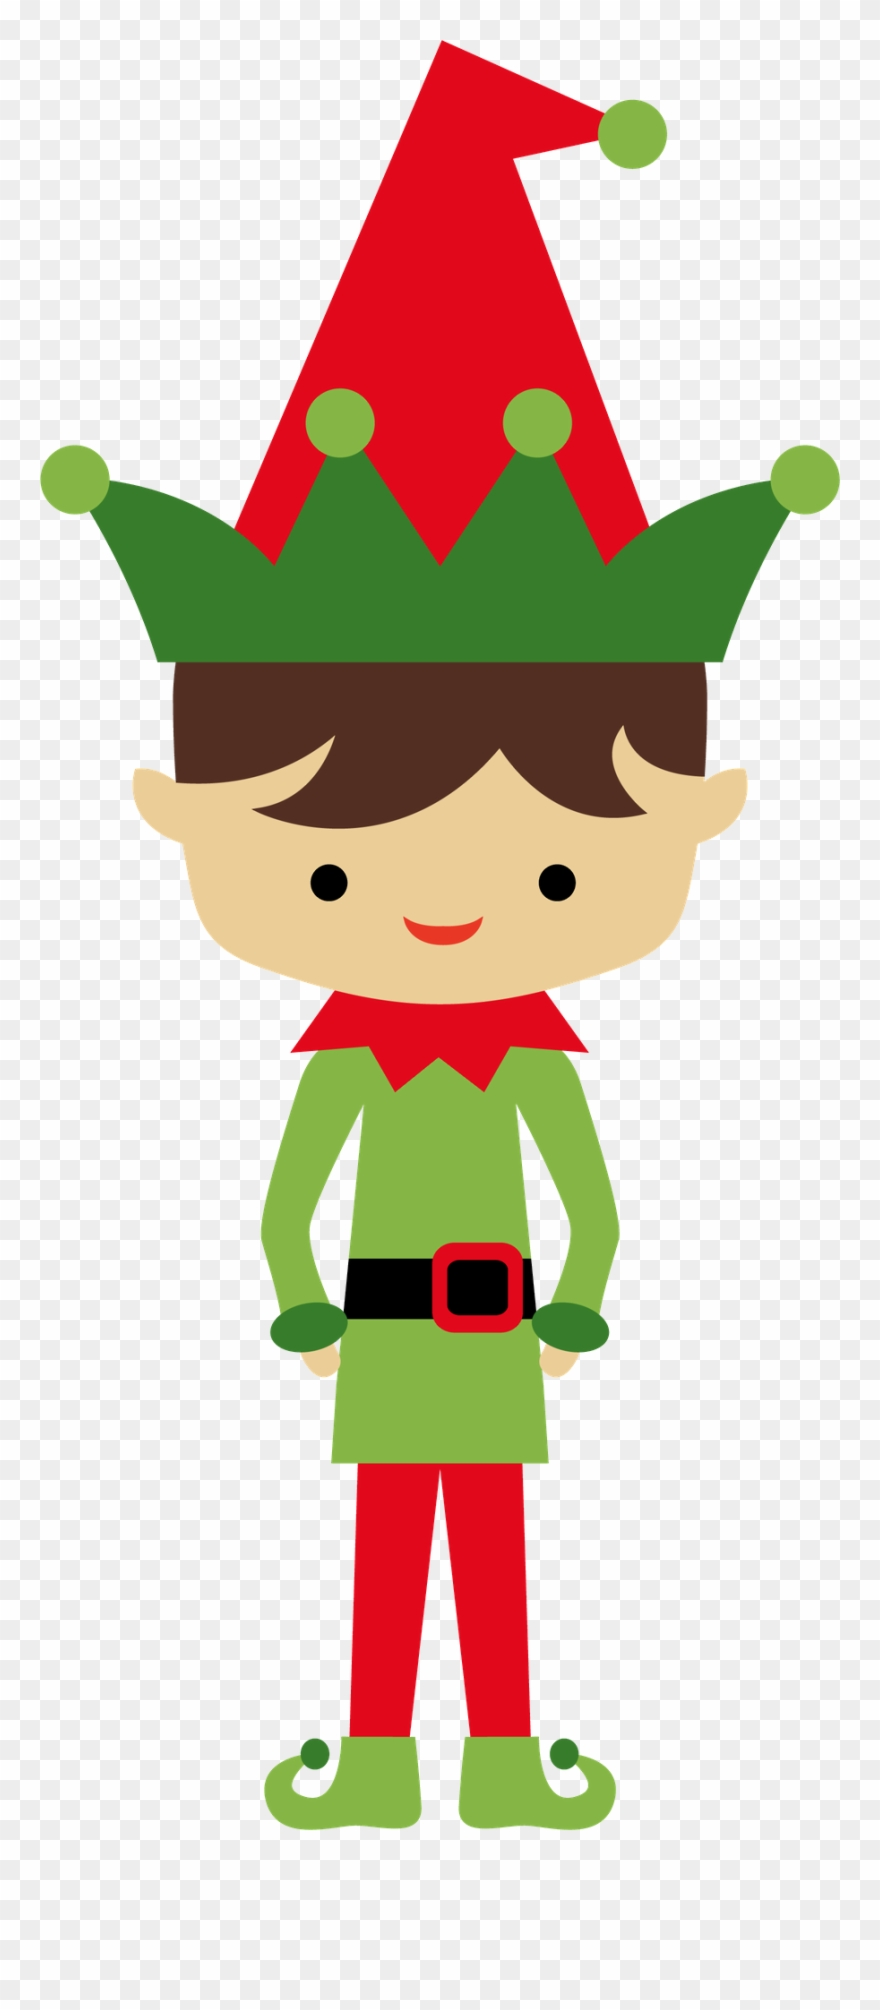 Christmas clipart crown png free download Christmas Elf Clip Art Christmas Templates, Christmas - Christmas ... png free download